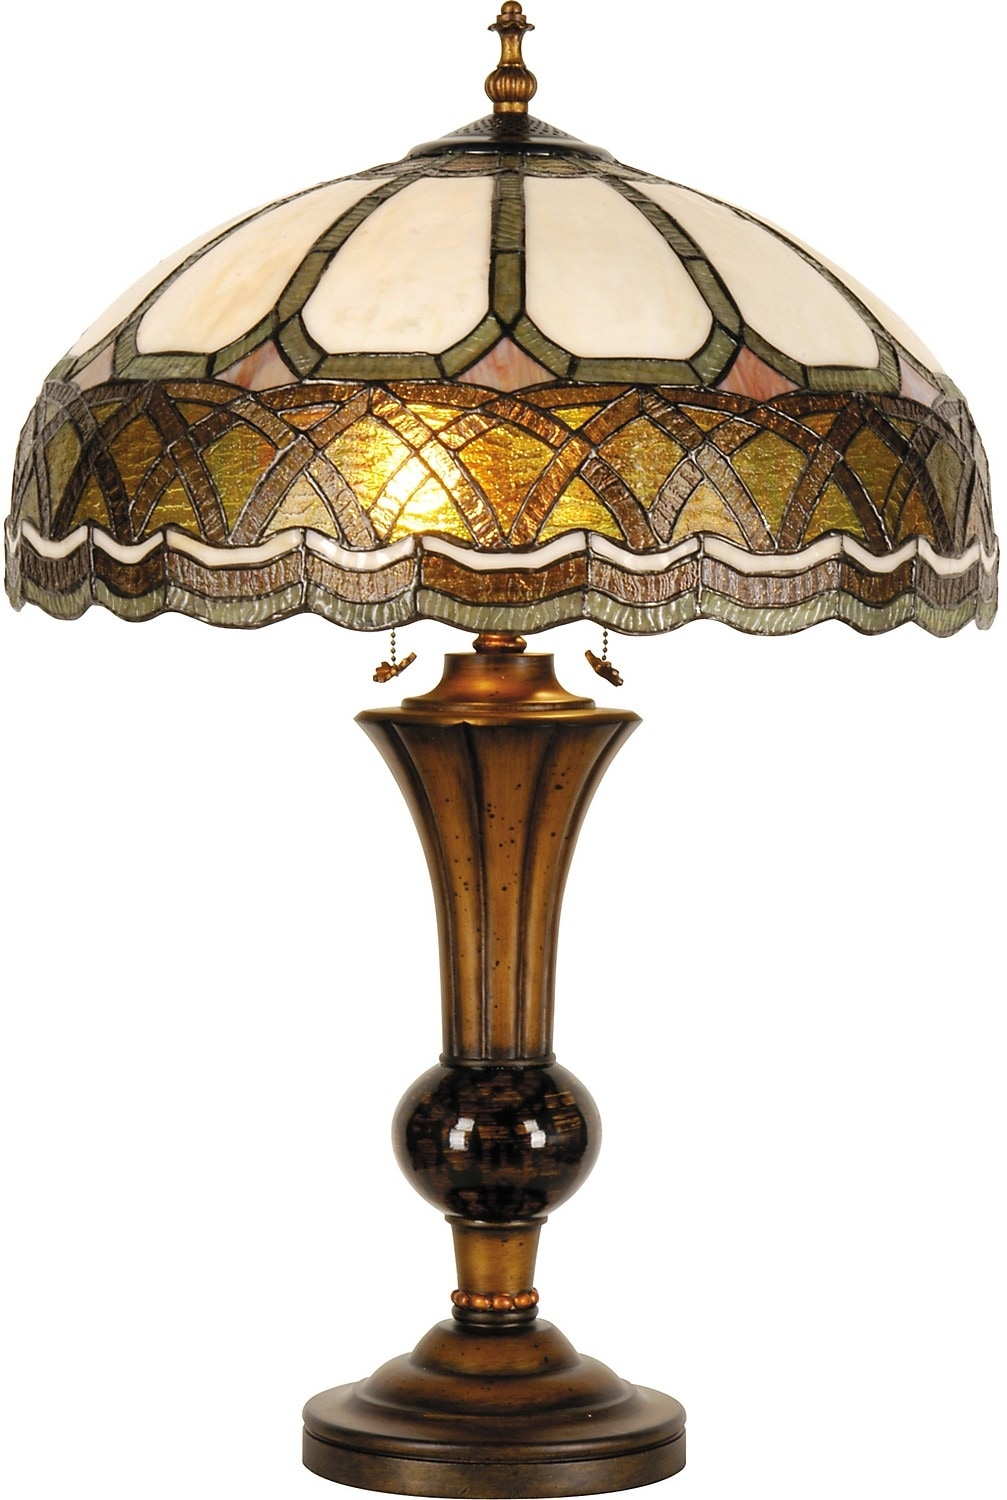 cameron tiffany style table lamp with stained glass shade united. Black Bedroom Furniture Sets. Home Design Ideas